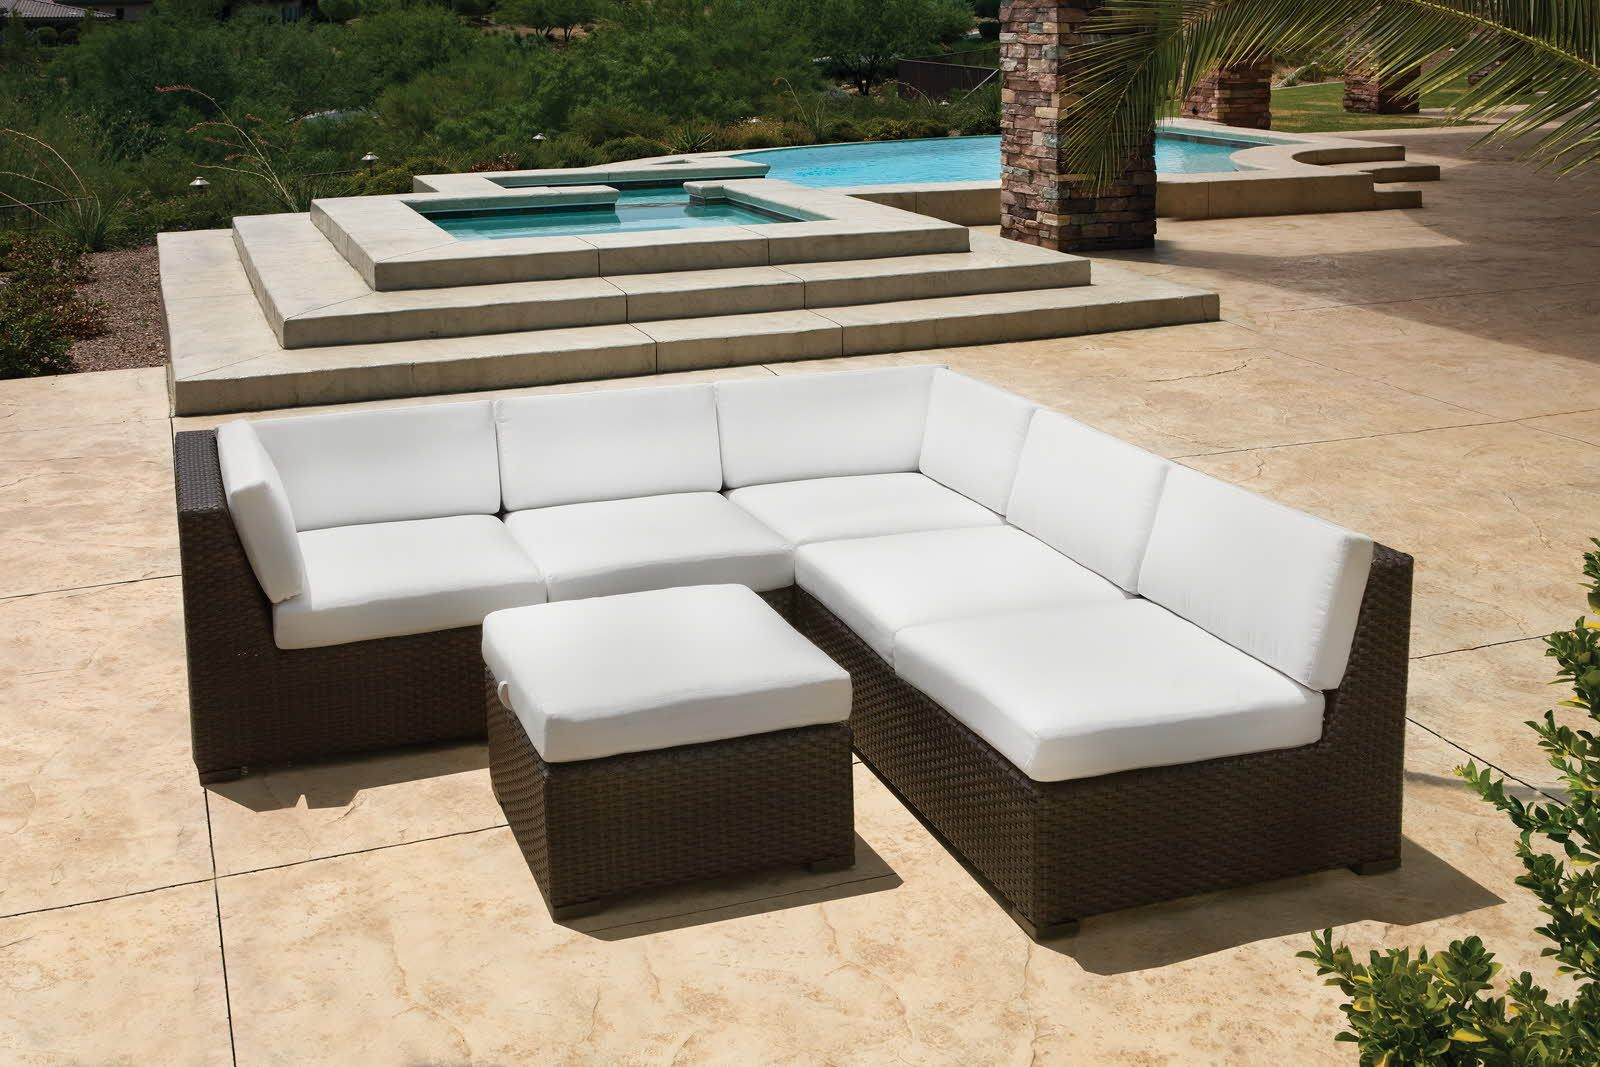 Modern Woven Outdoor Sectional Discount Patio Furniture Outdoor Pool Furniture Pool Furniture Modern outdoor pool furniture